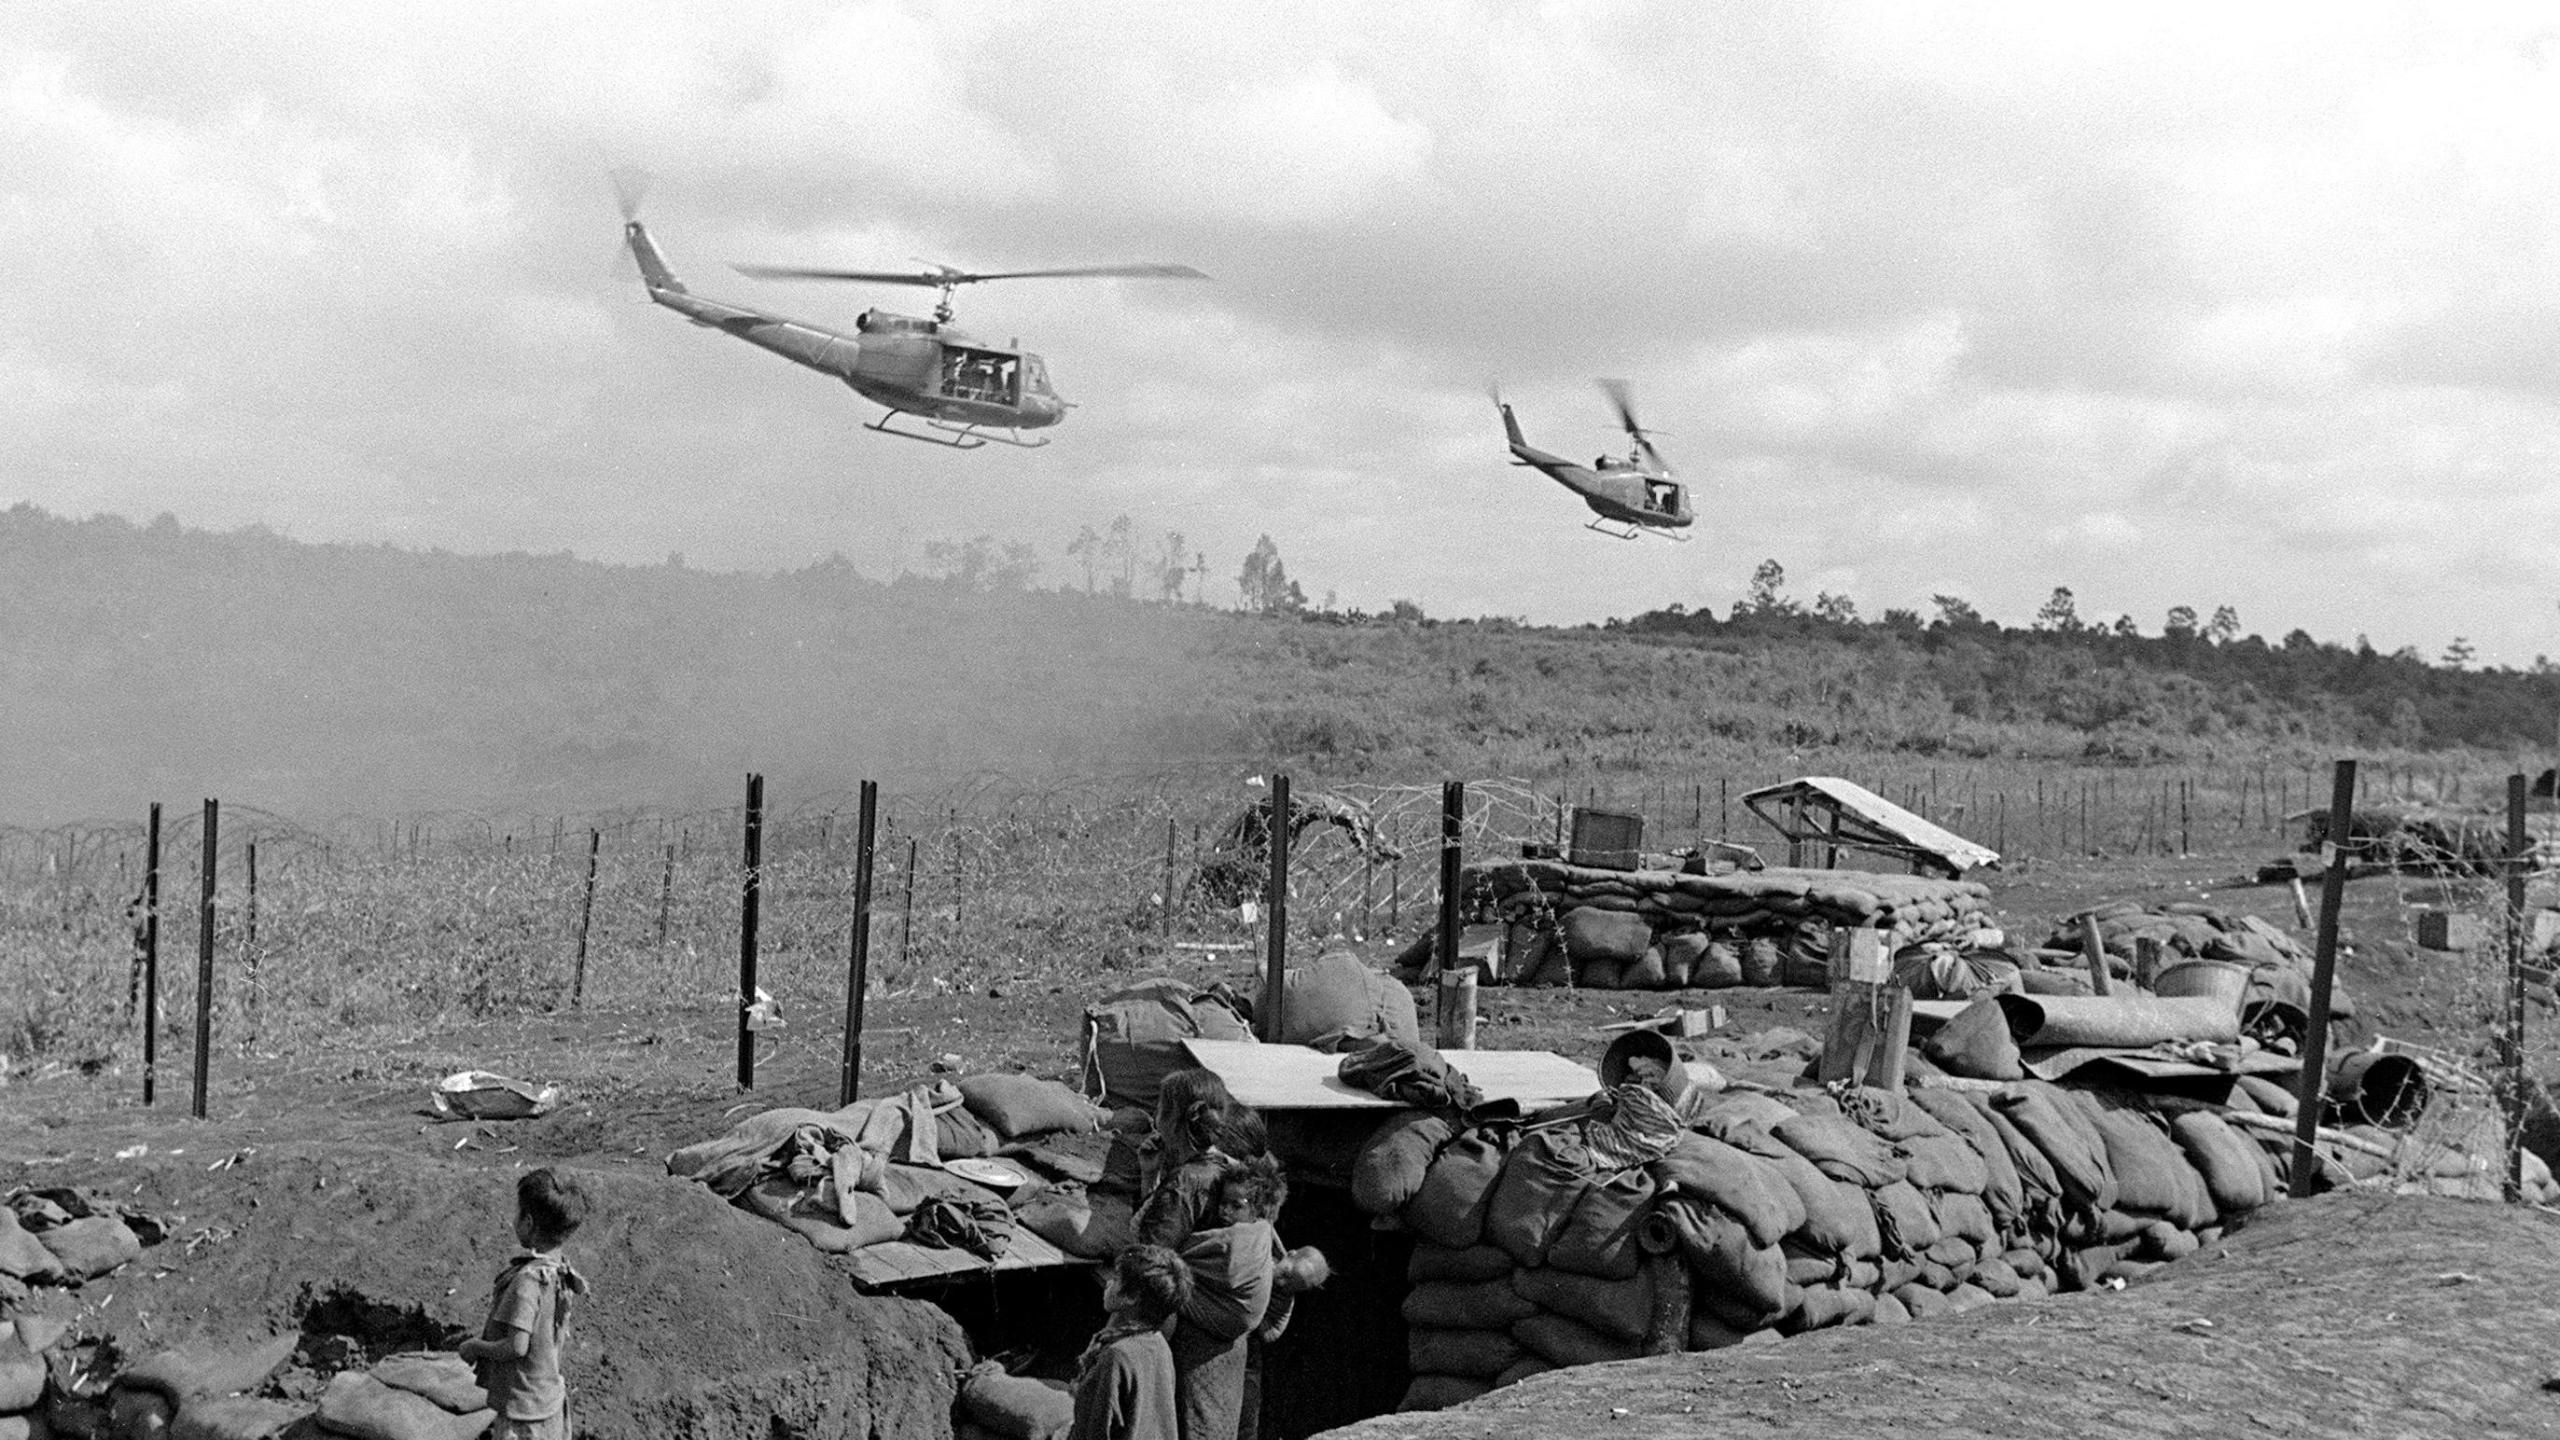 Watch helicopters arriving at an American camp in Plei Me, south Vietnam in Nov. 1, 1965. (Credit: AFP via Getty Images)